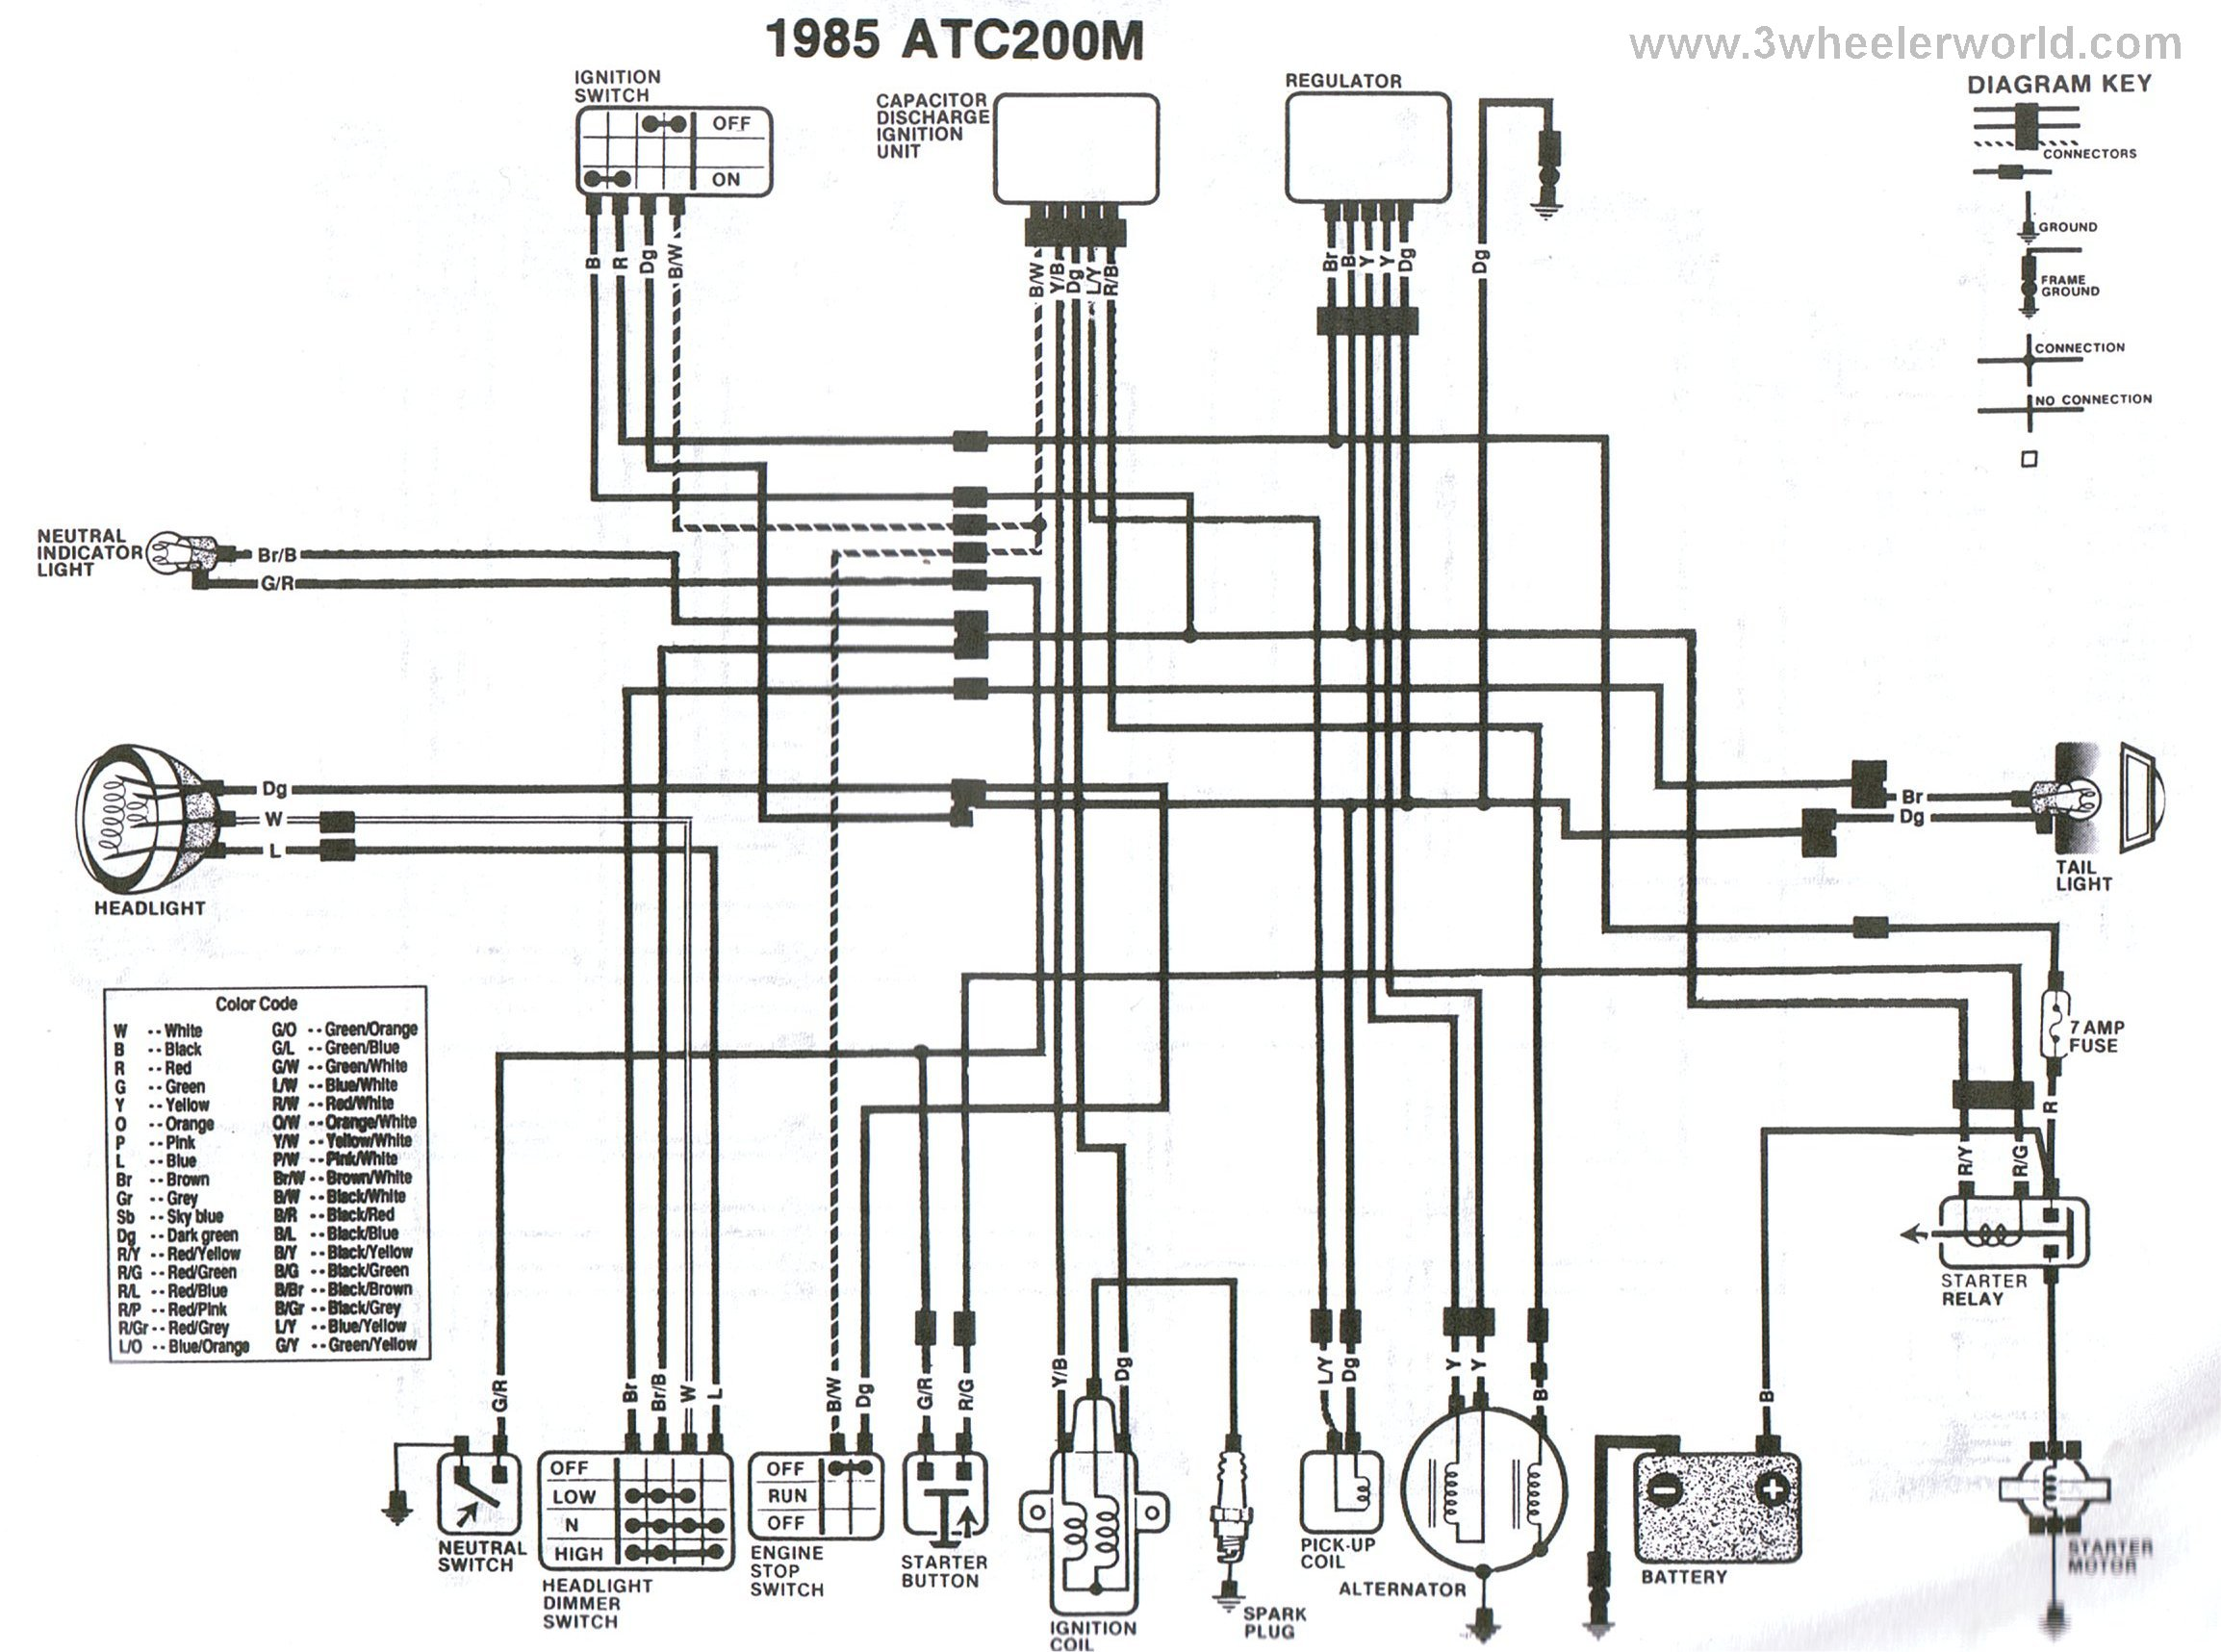 Wiring Diagram 1985 Atc250es Big Red Friendship Bracelet